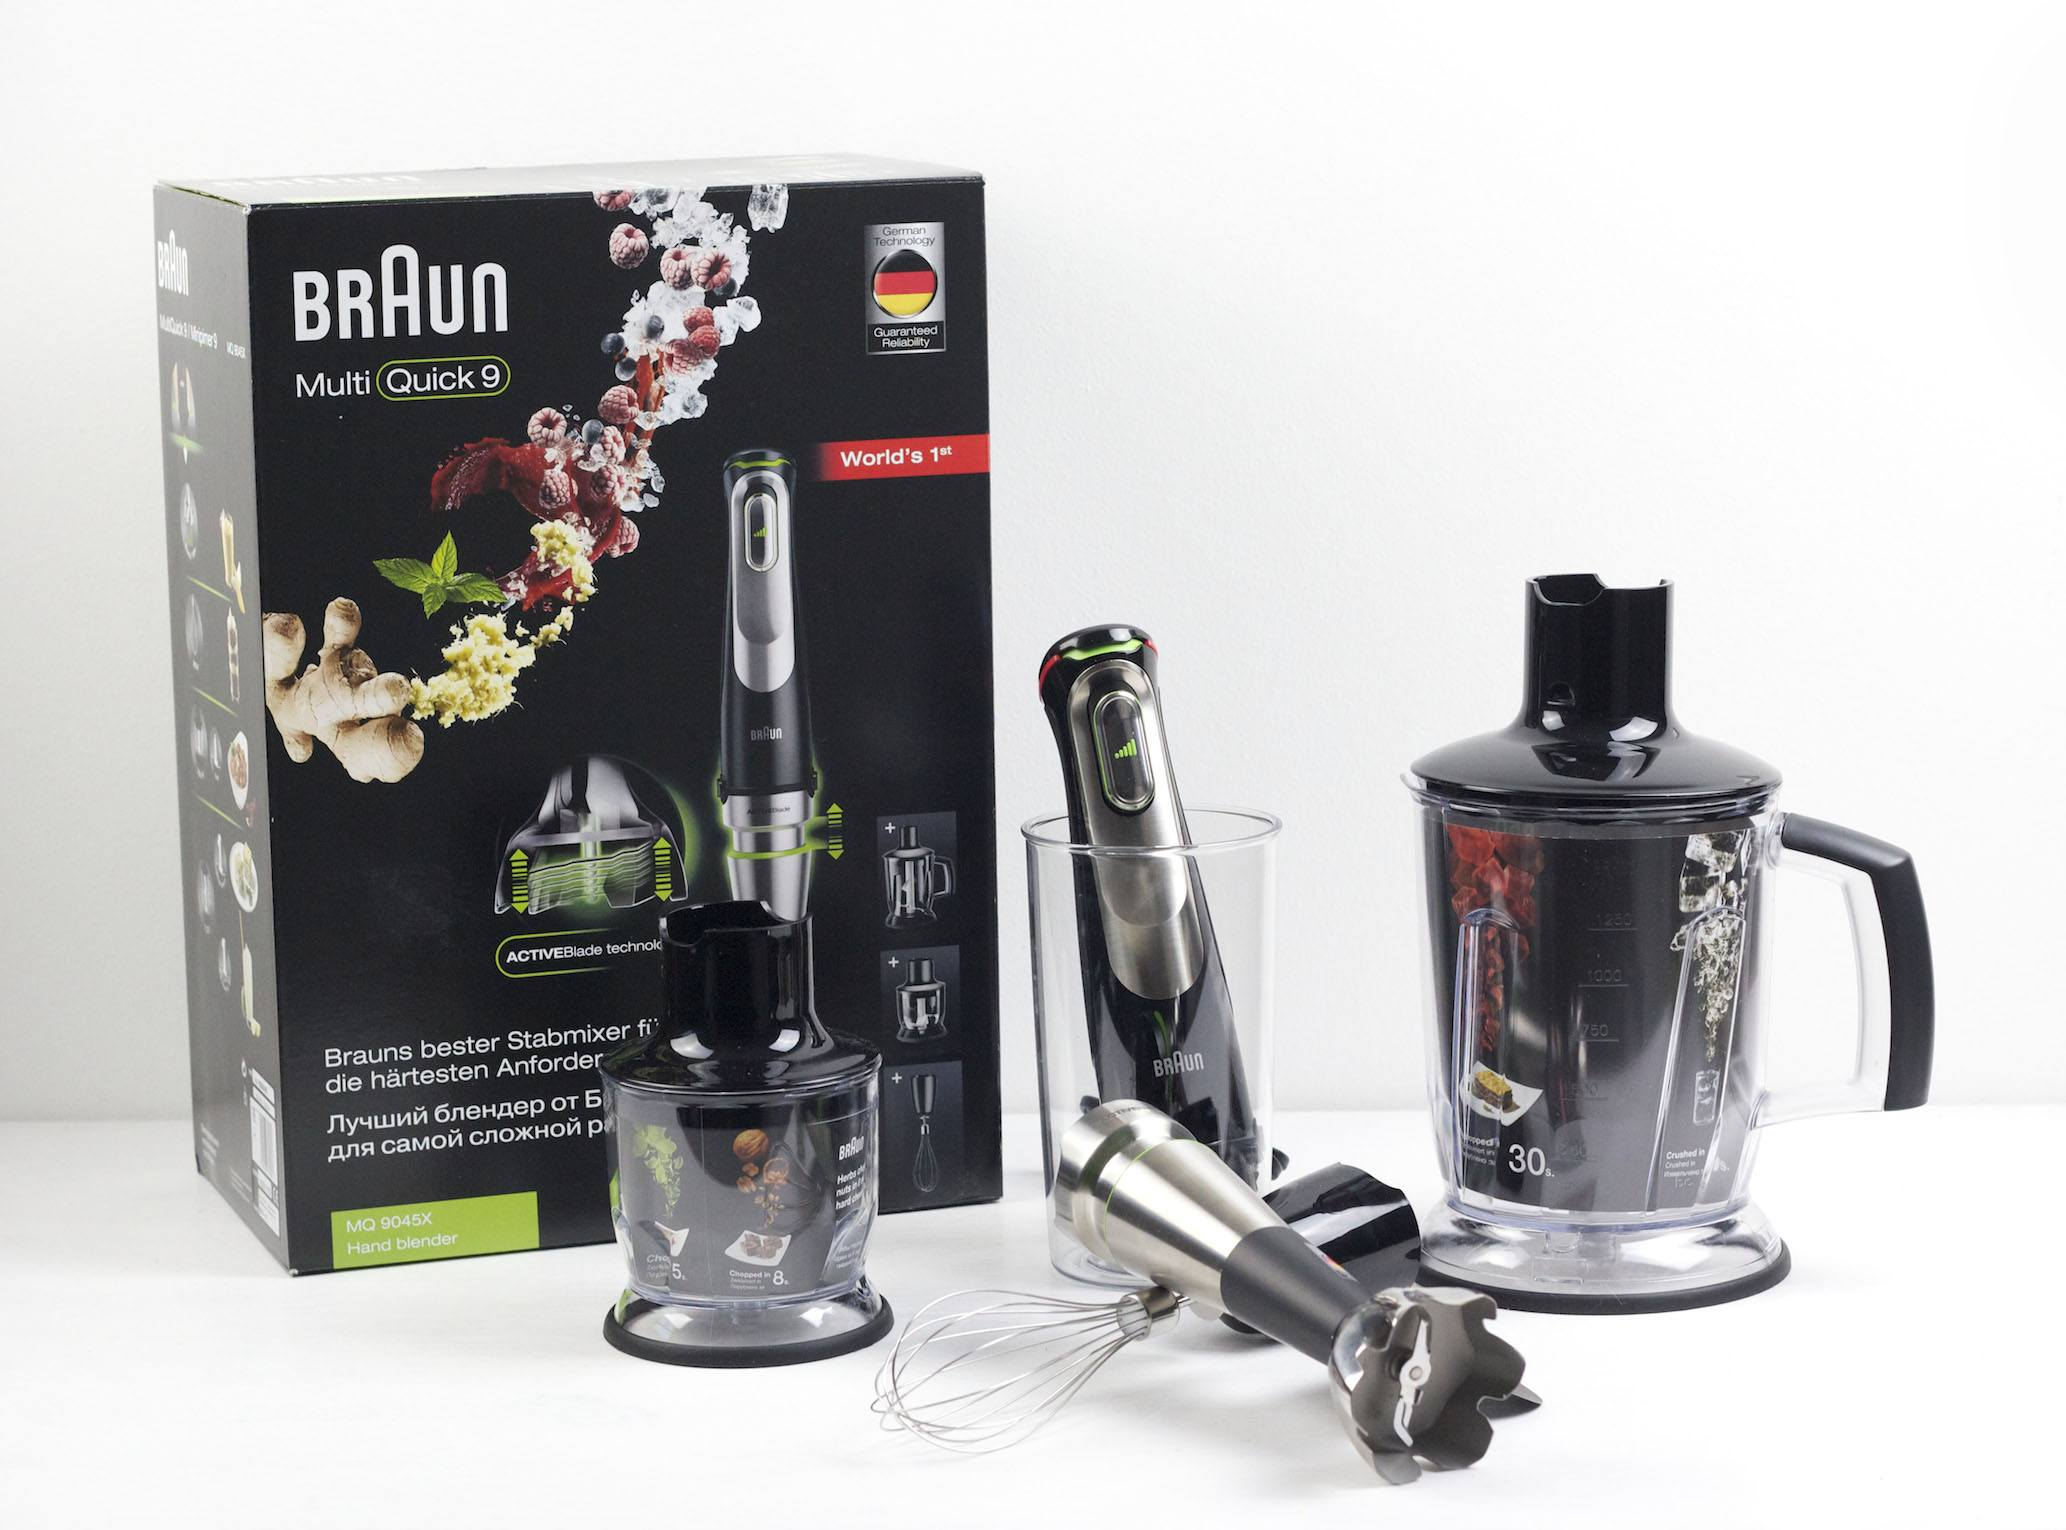 Braun Multiquick 9 Set